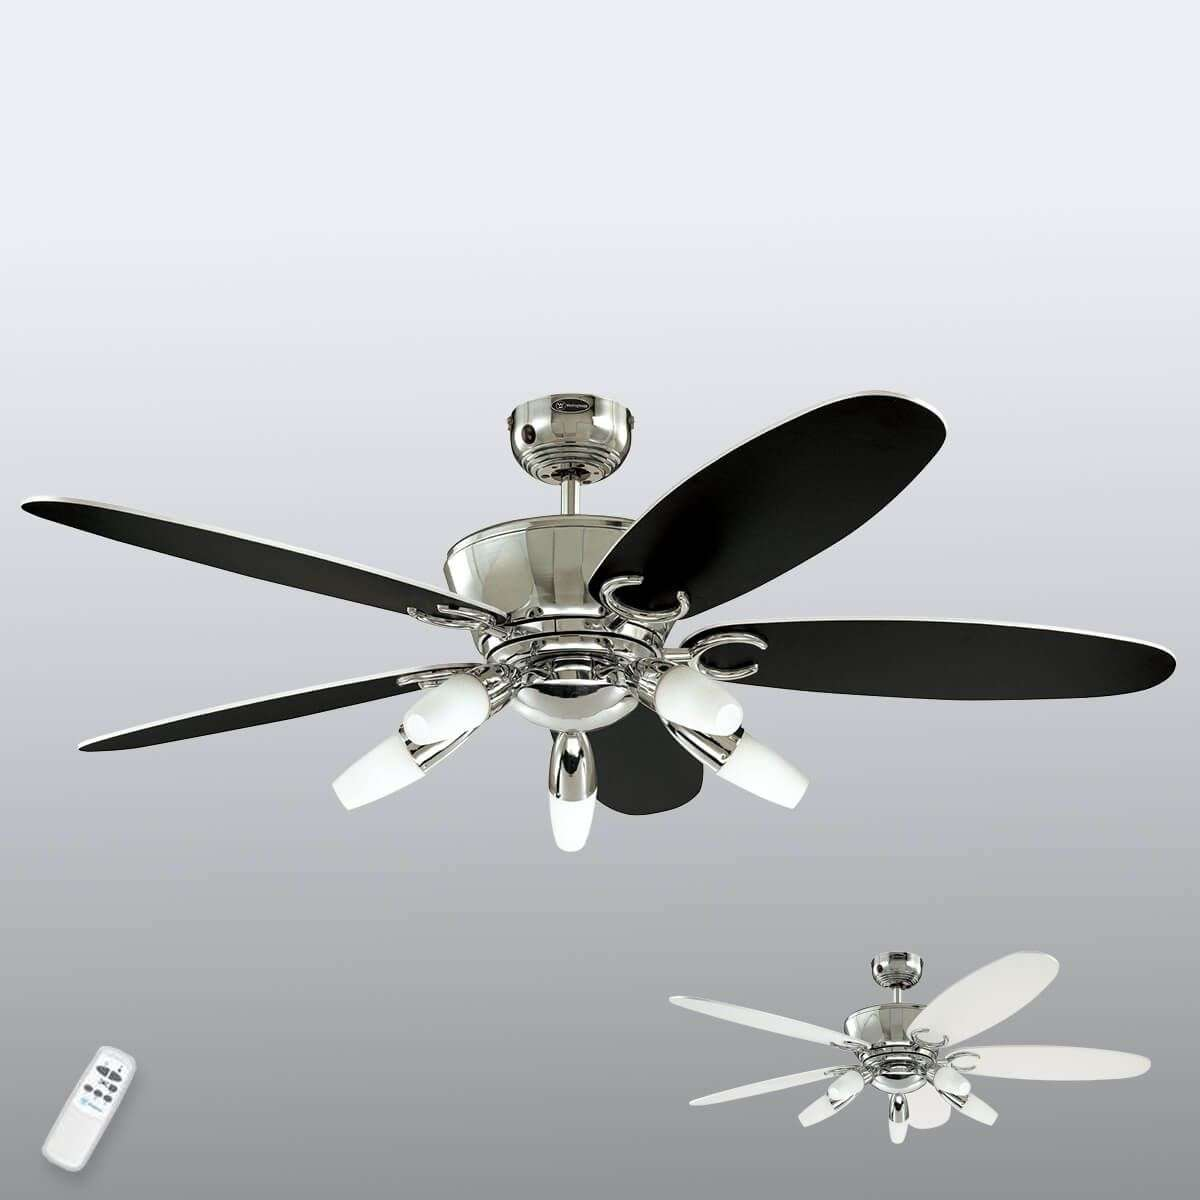 Airus ceiling fan energy saving remote control lights airus ceiling fan energy saving remote control mozeypictures Image collections